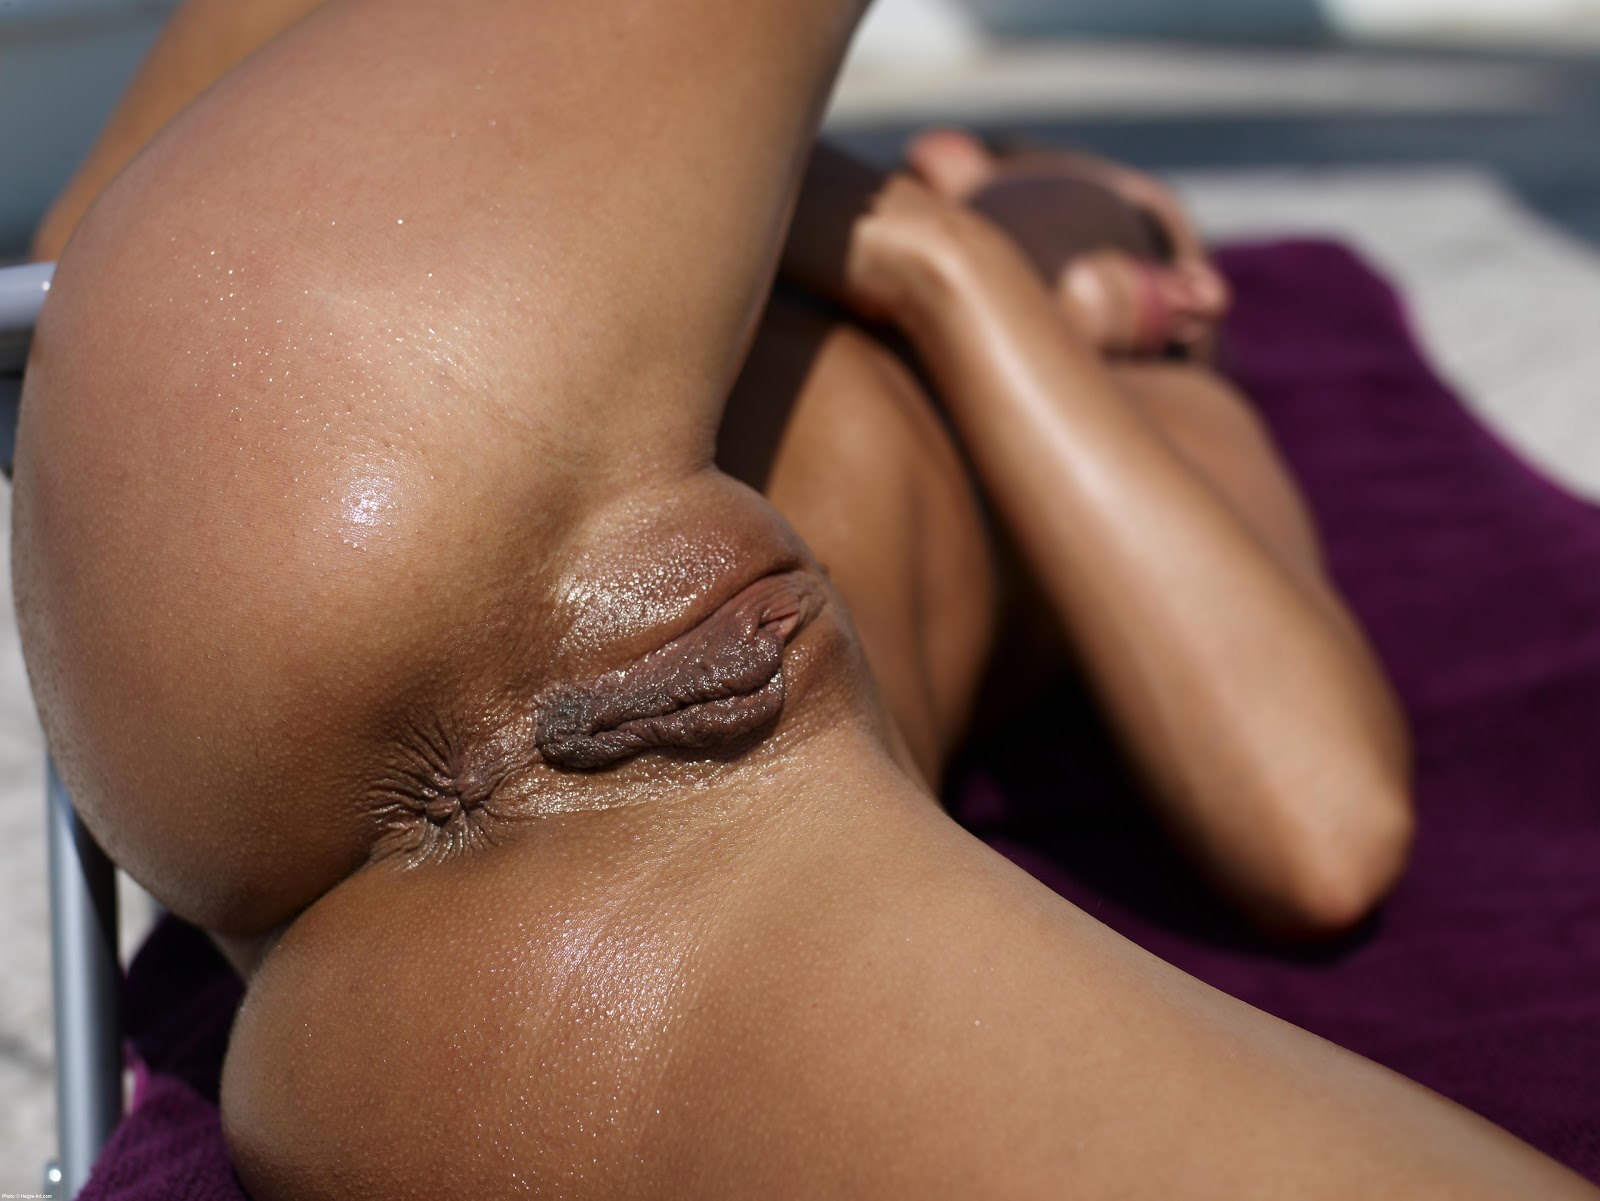 close-wet-pussy-and-ass